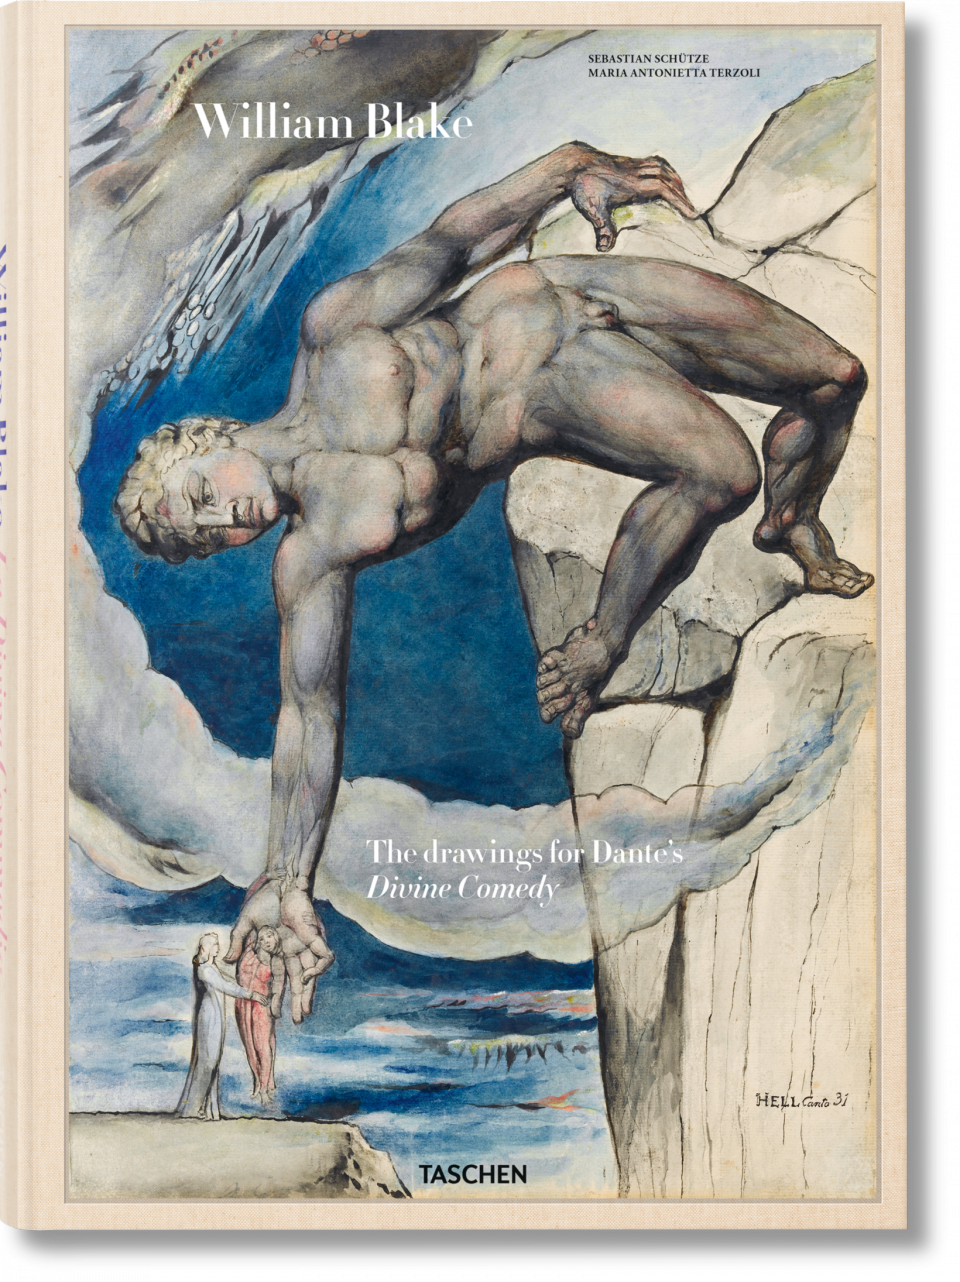 william blake the drawings for dante s divine comedy books the drawings for dante s divine comedy